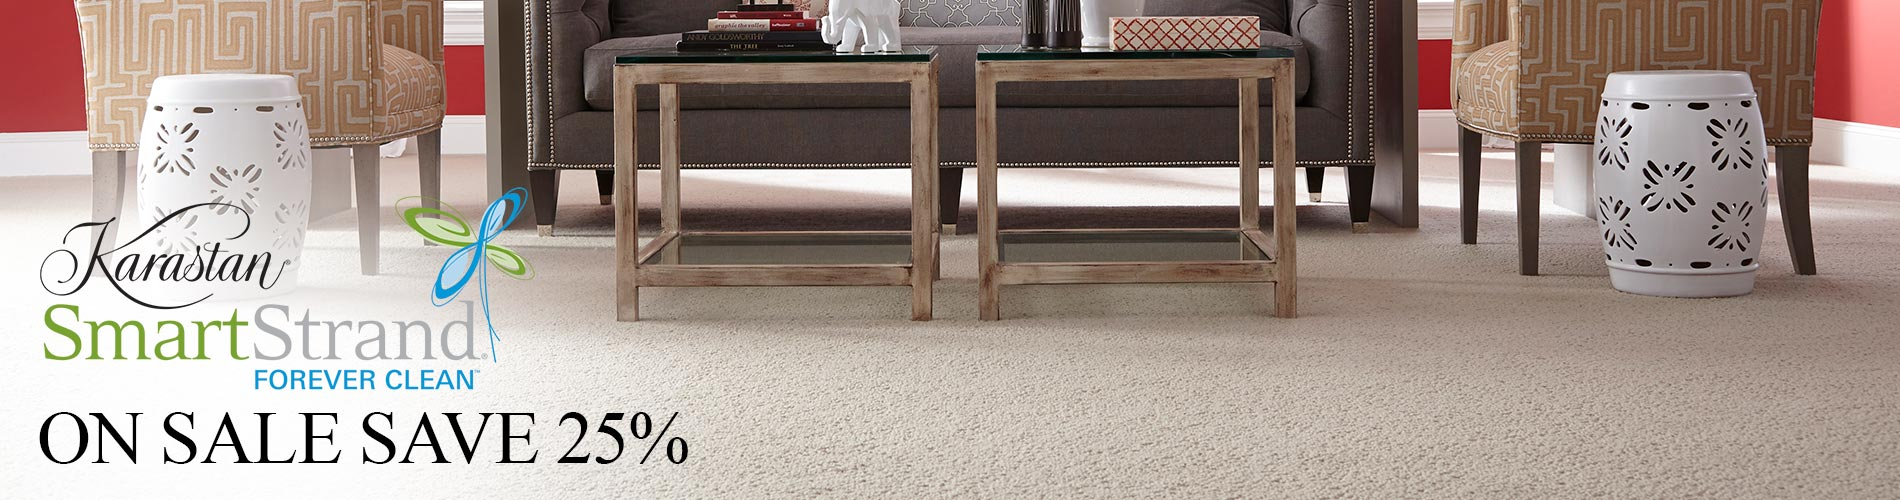 Karastan SmartStrand Forever Clean On Sale Now!  Save 25%!